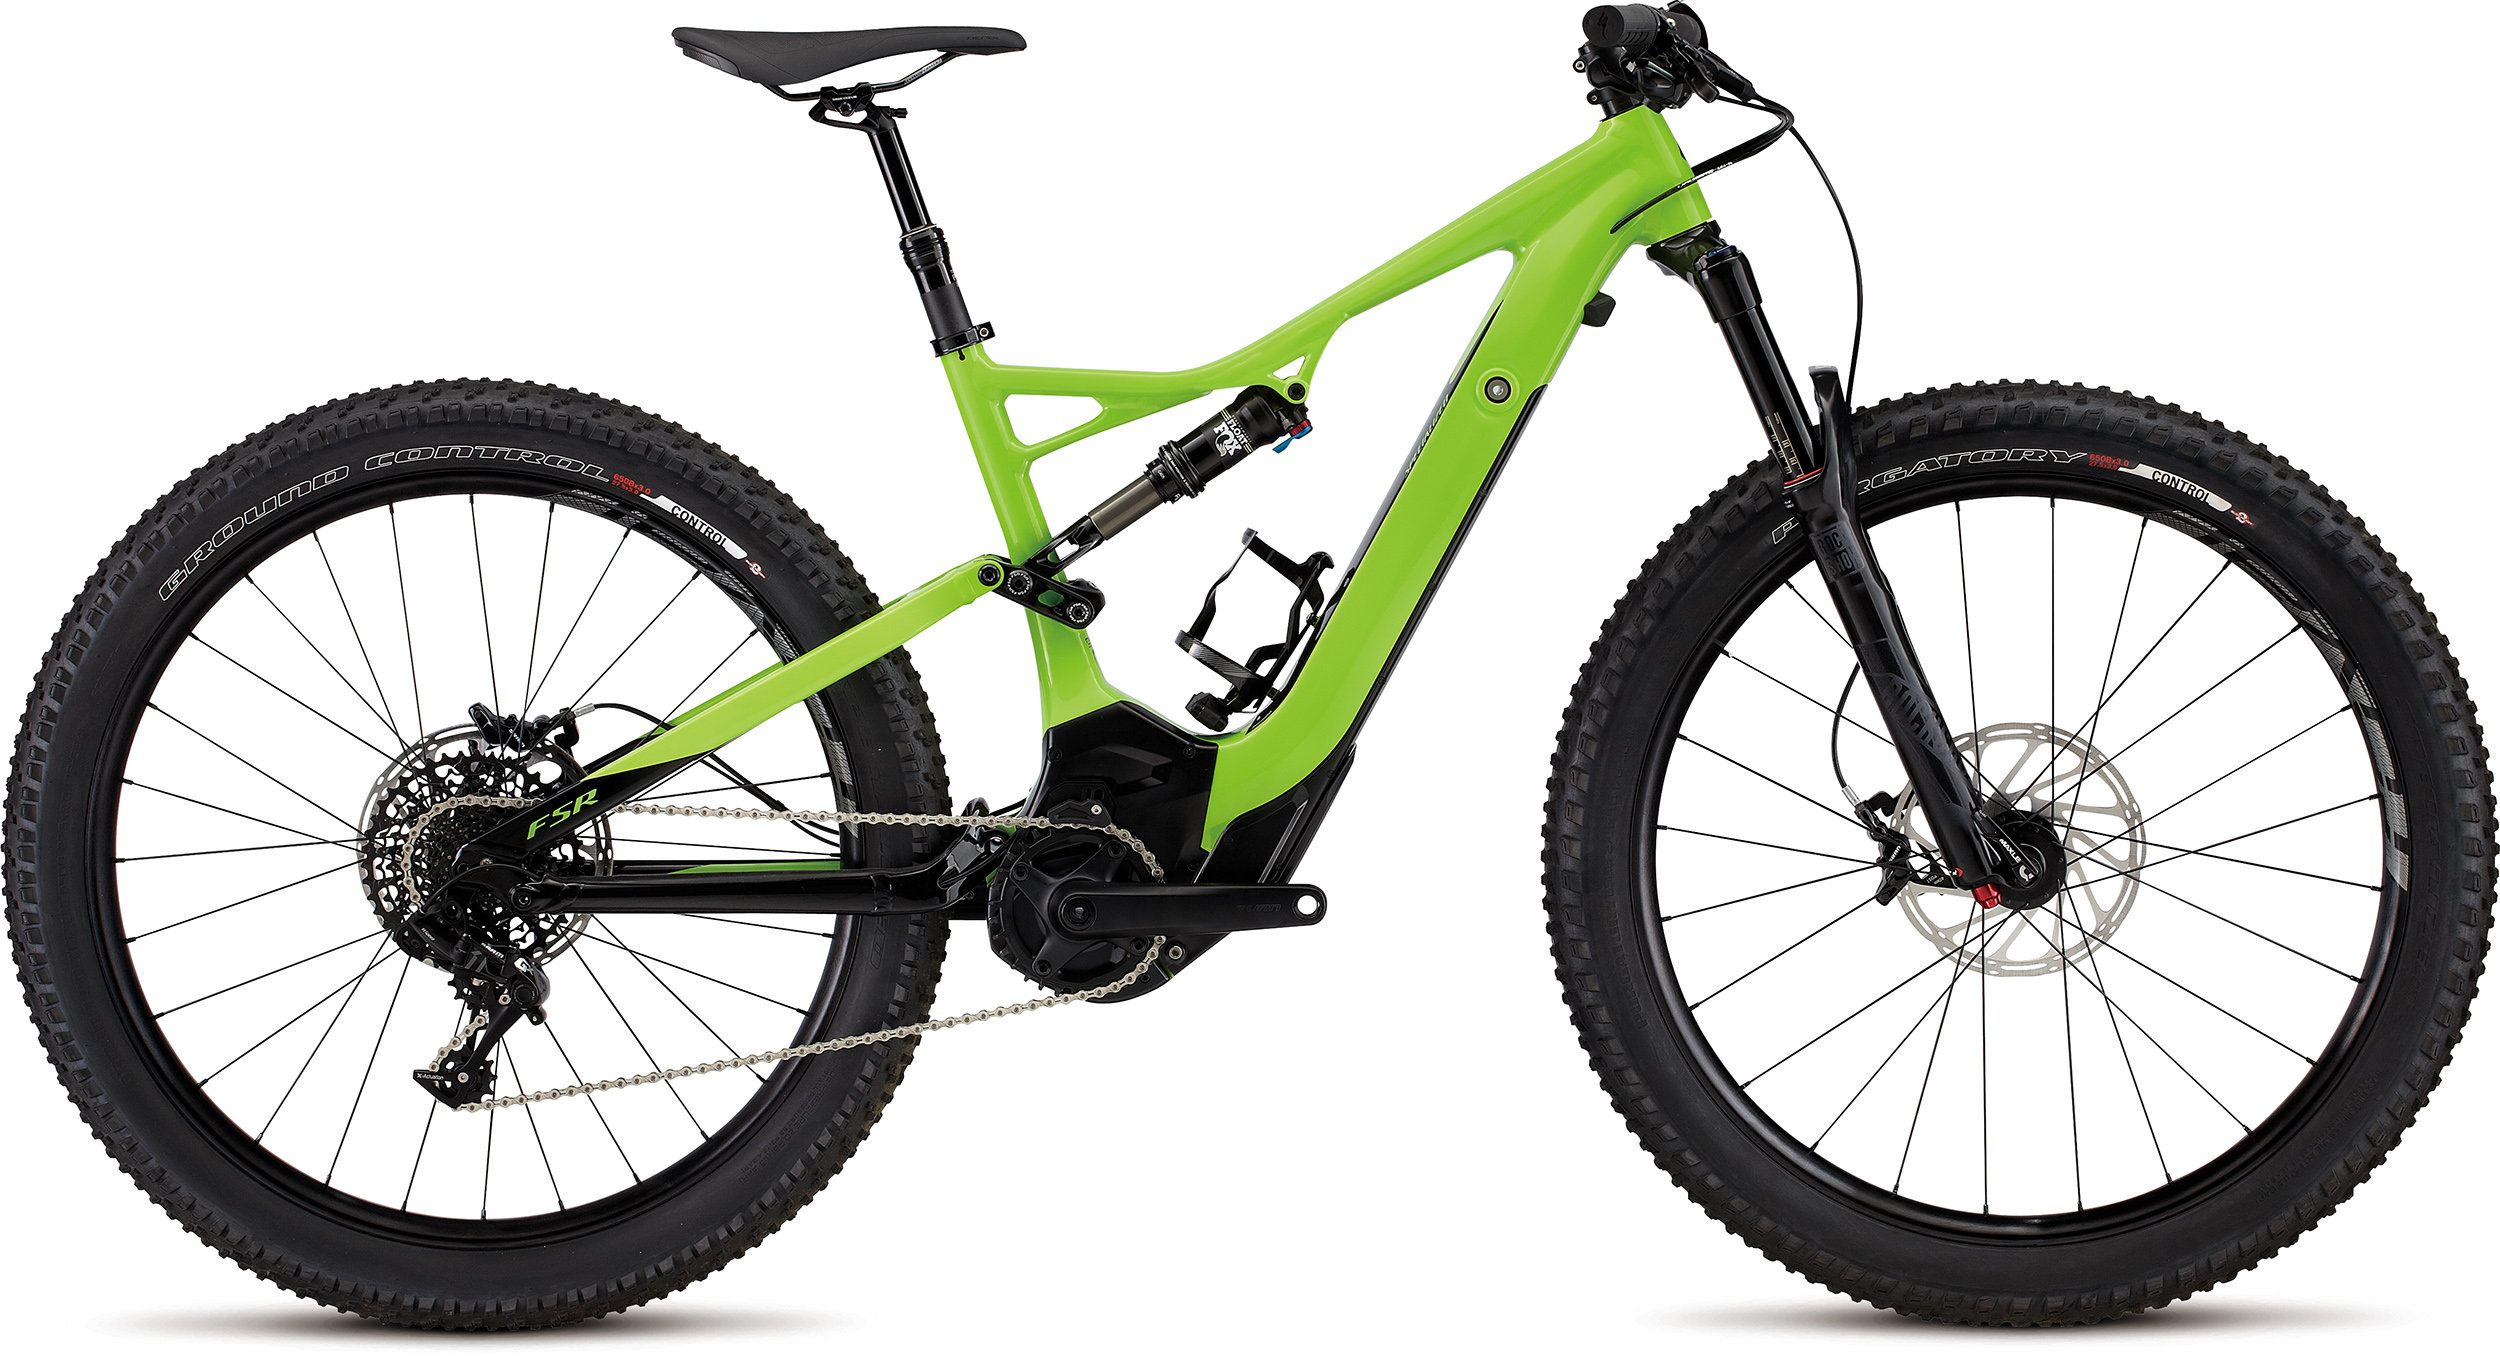 04c5cc0ef28 2017 Specialized Turbo Levo FSR Comp 6Fattie - Specialized Concept Store